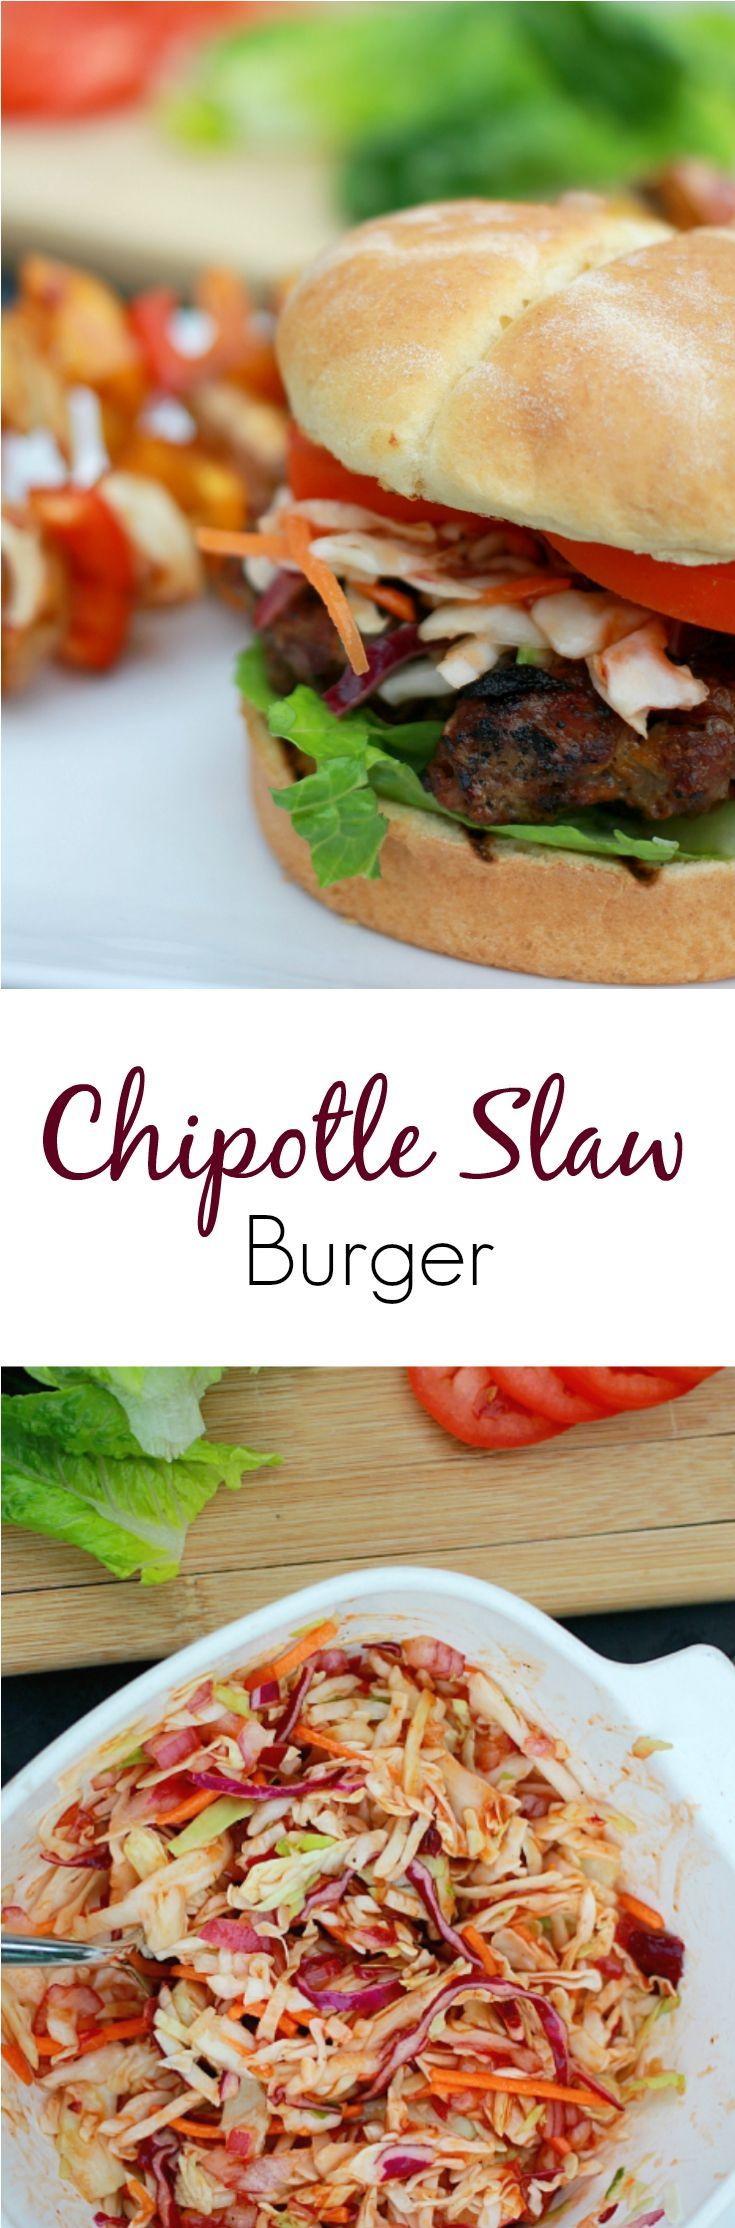 823 best images about RECIPES: BURGERS - Bodacious Burgers, Sliders ...